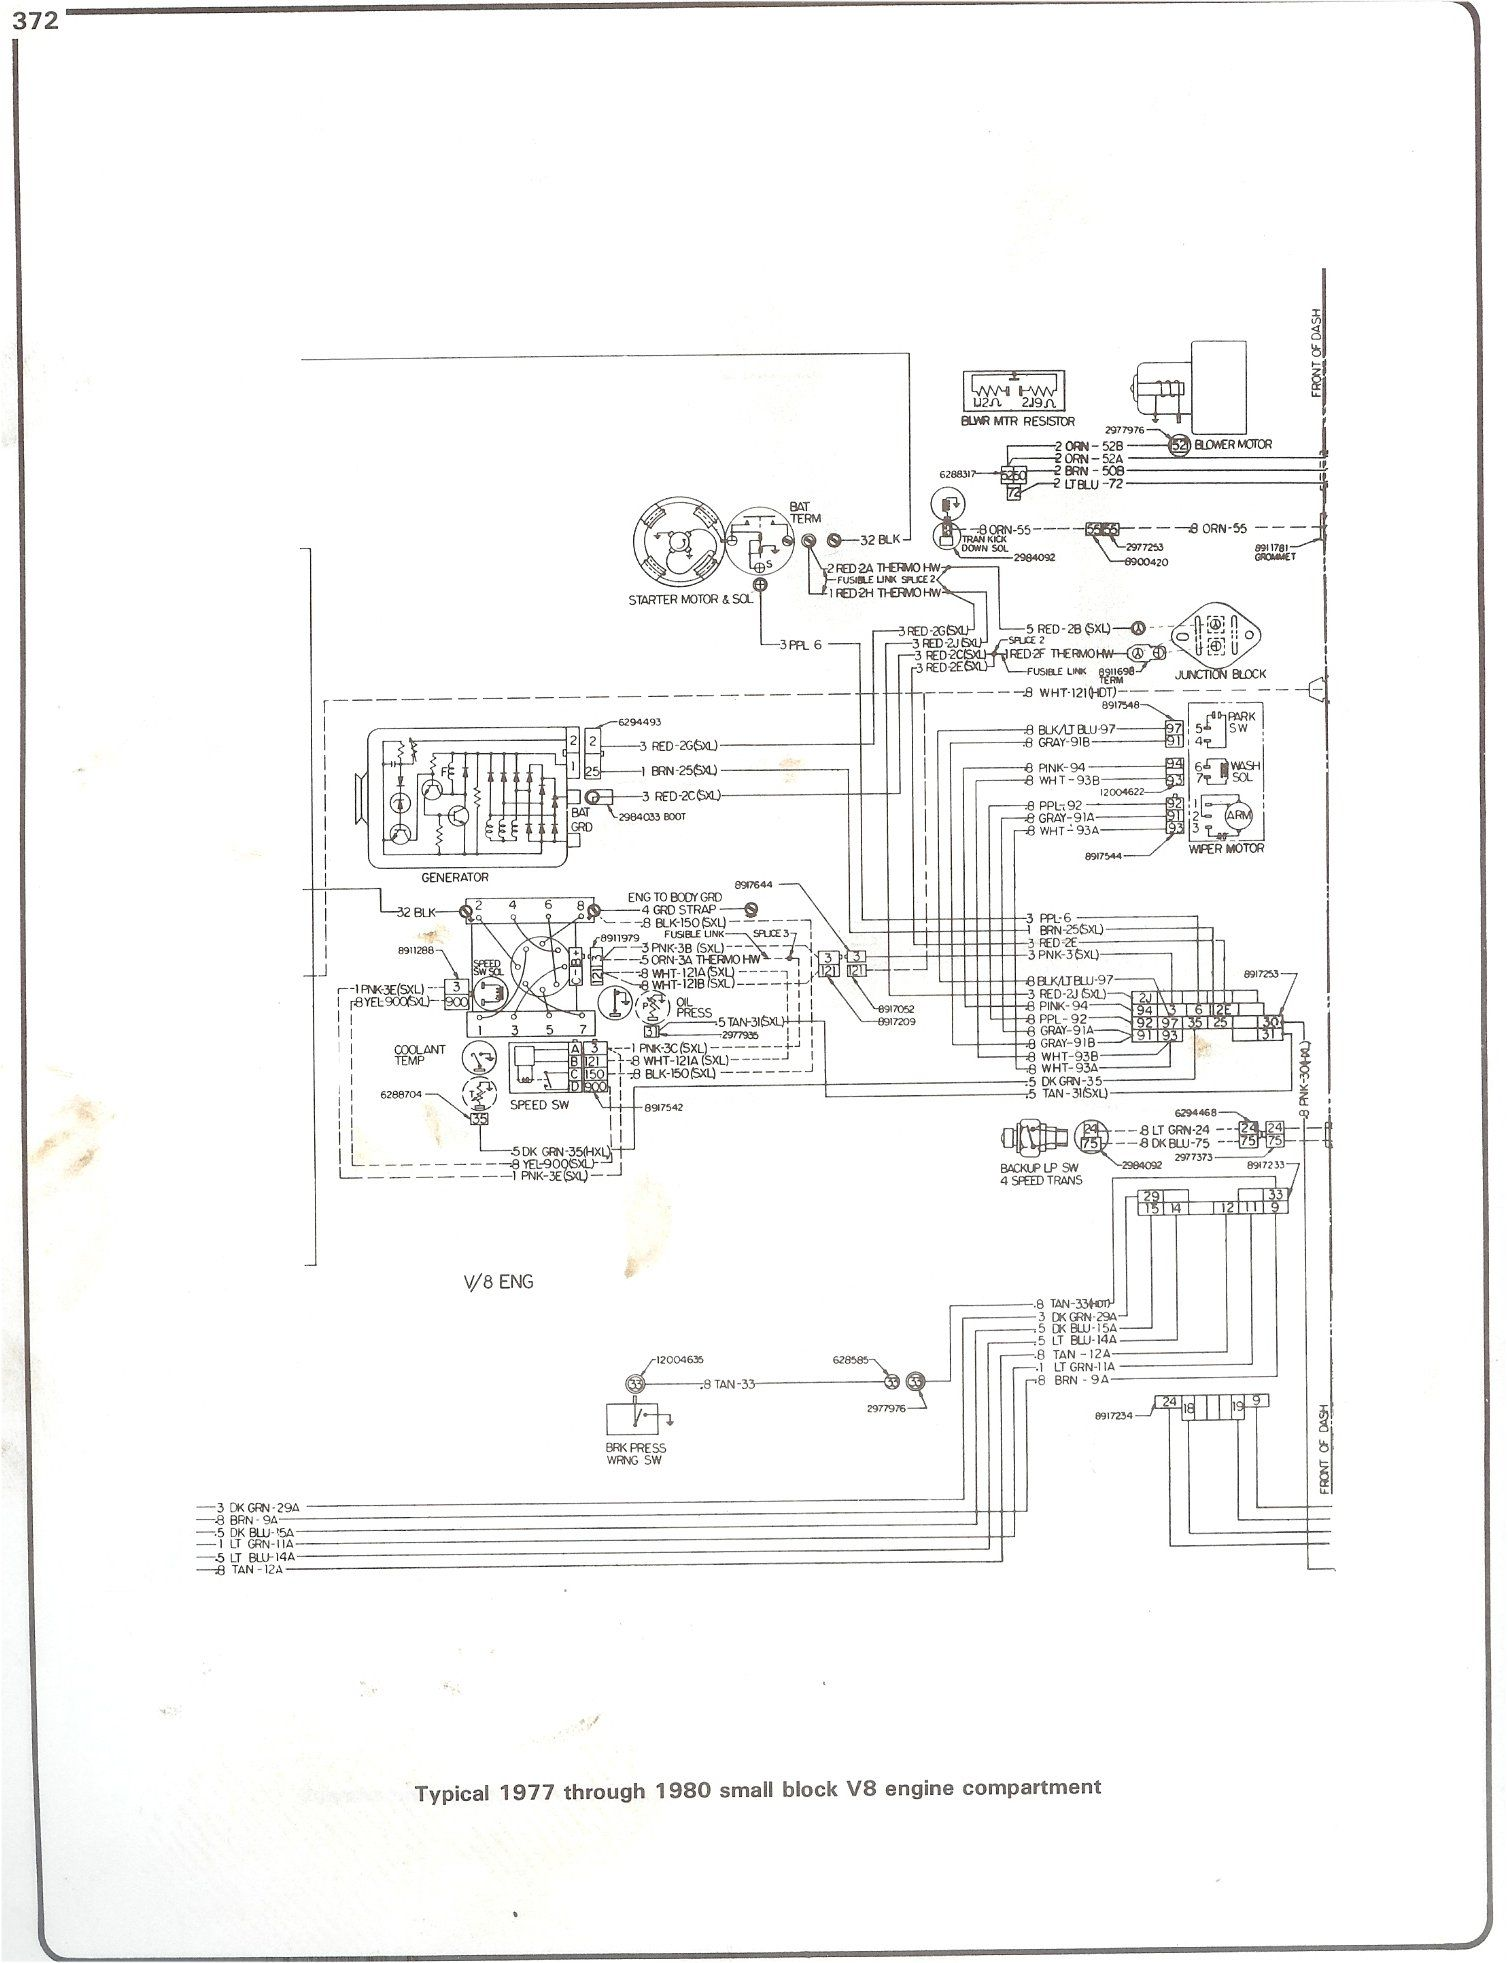 fb3f9430fe195bc6159499cfa8a39231 85 chevy truck wiring diagram chevy truck wiring diagram  at bayanpartner.co